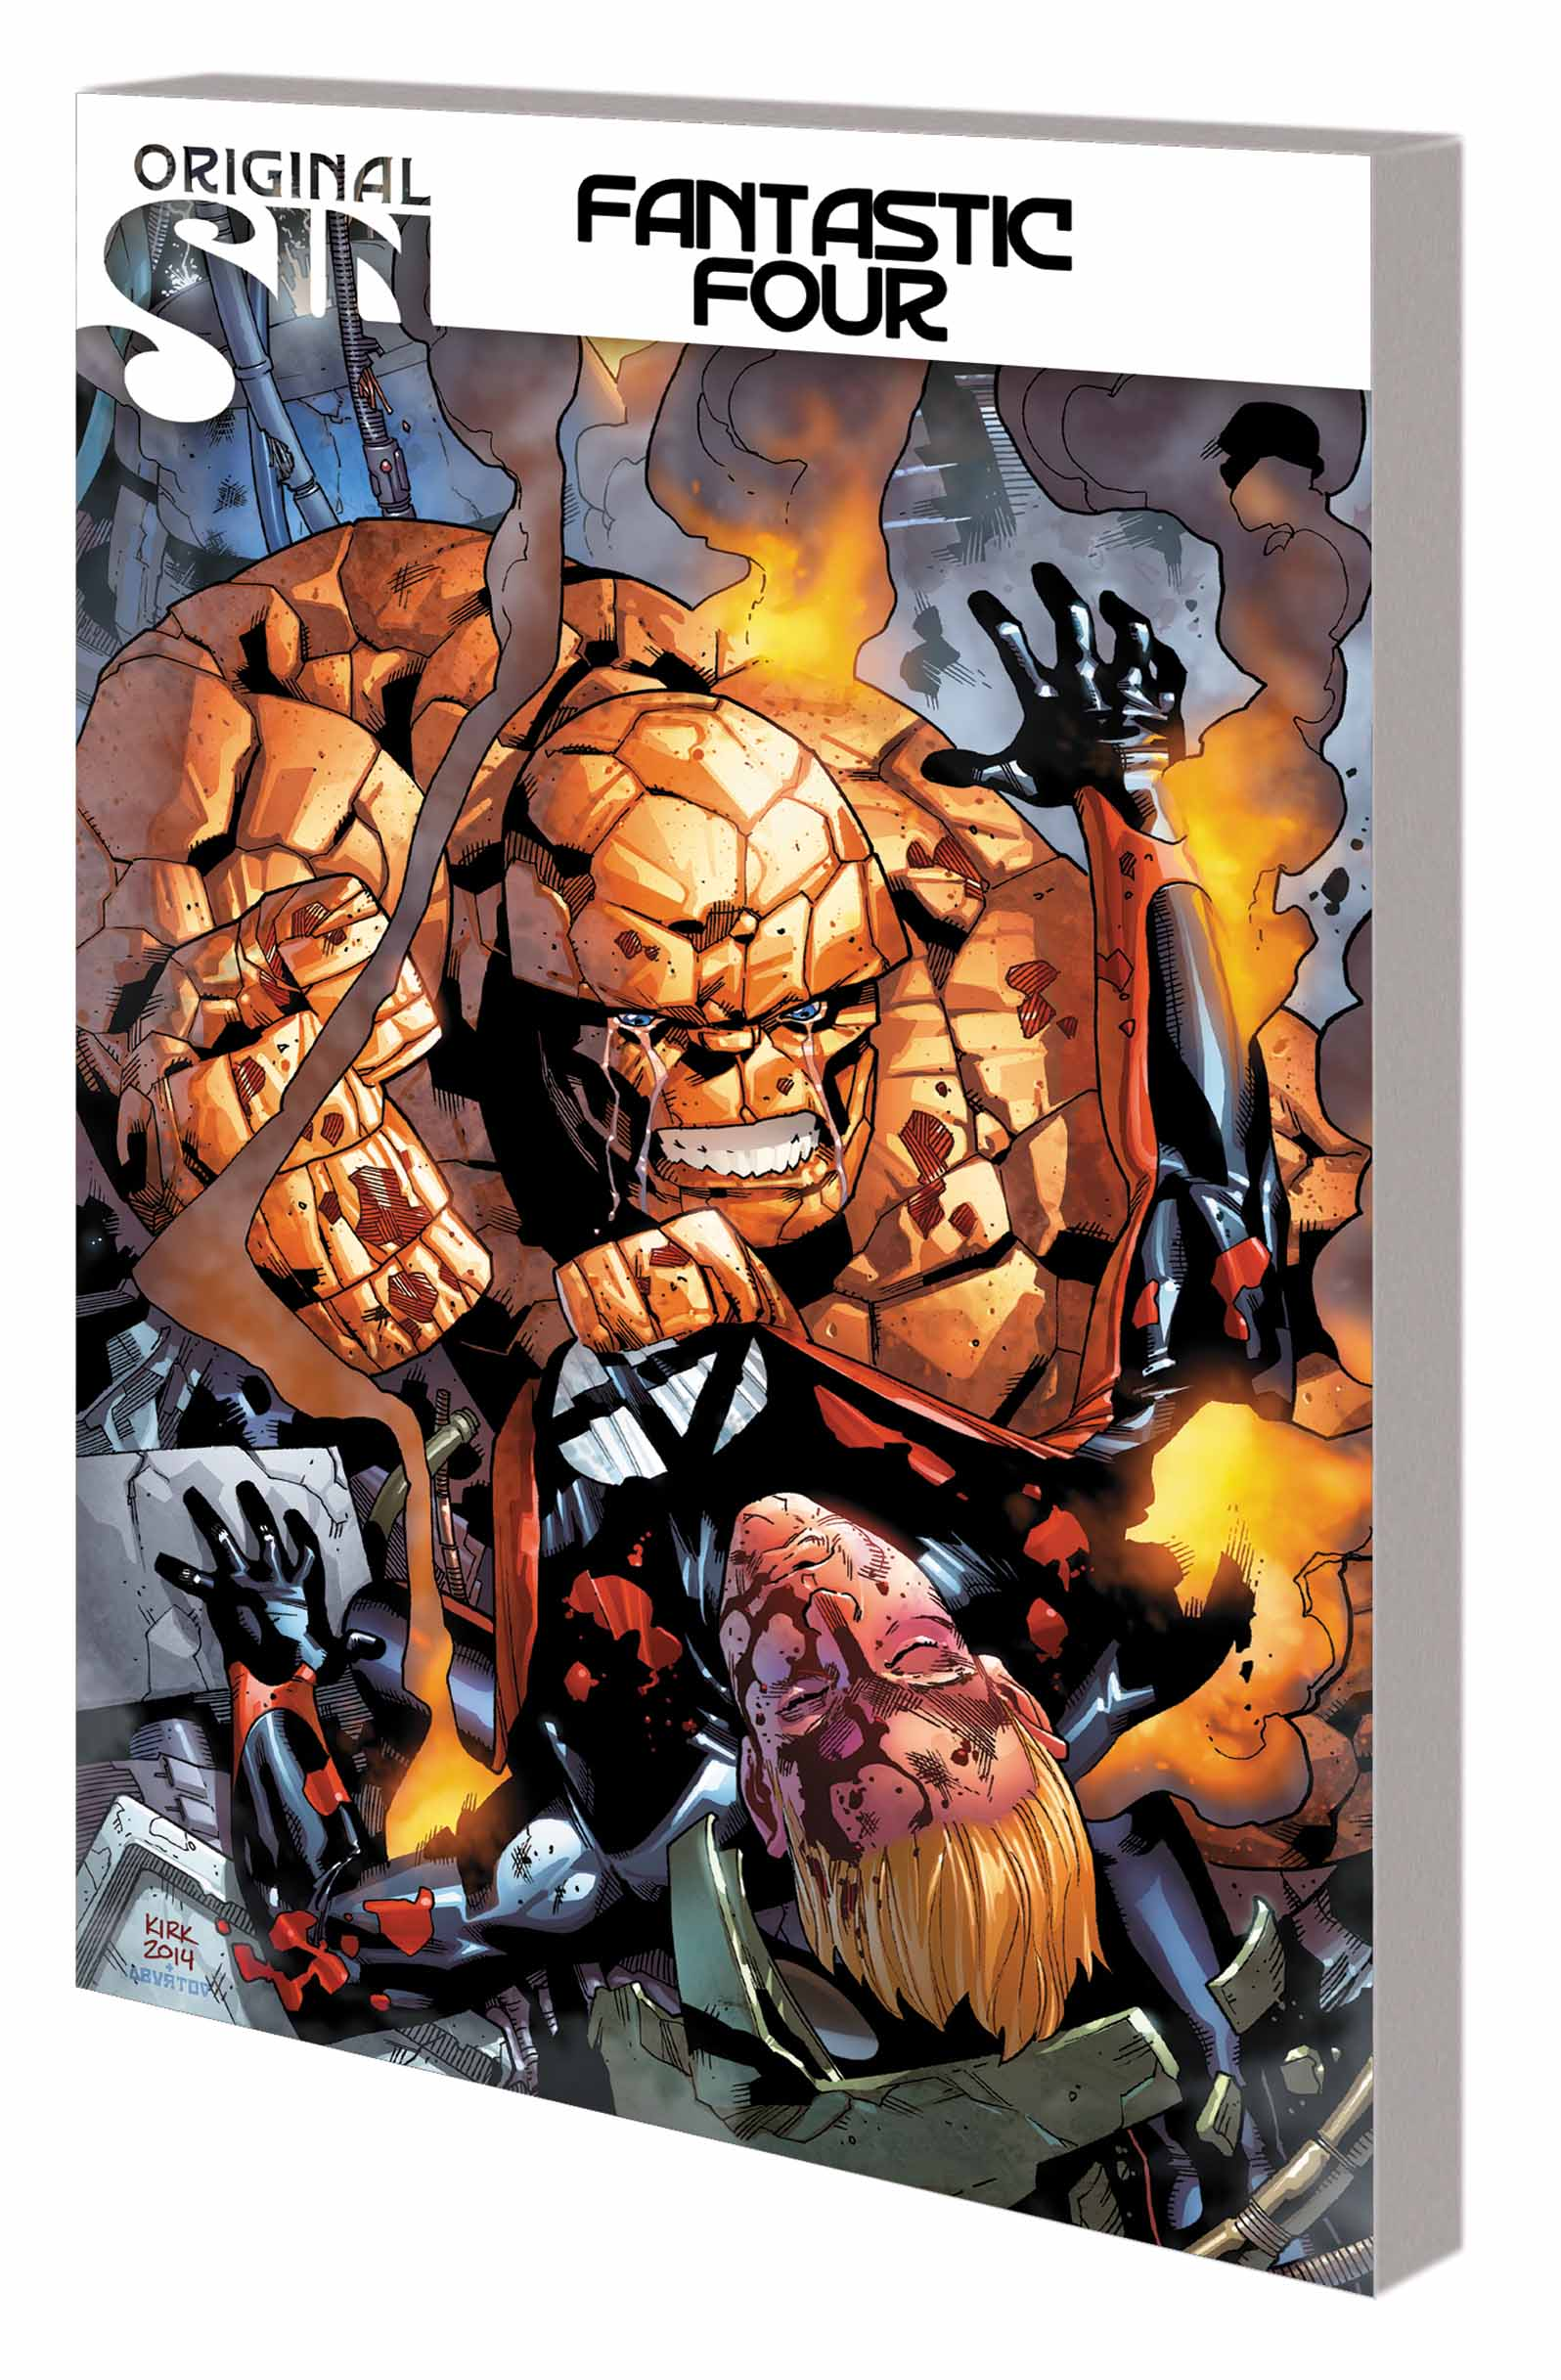 Fantastic Four Vol. 2: Original Sin (Trade Paperback)